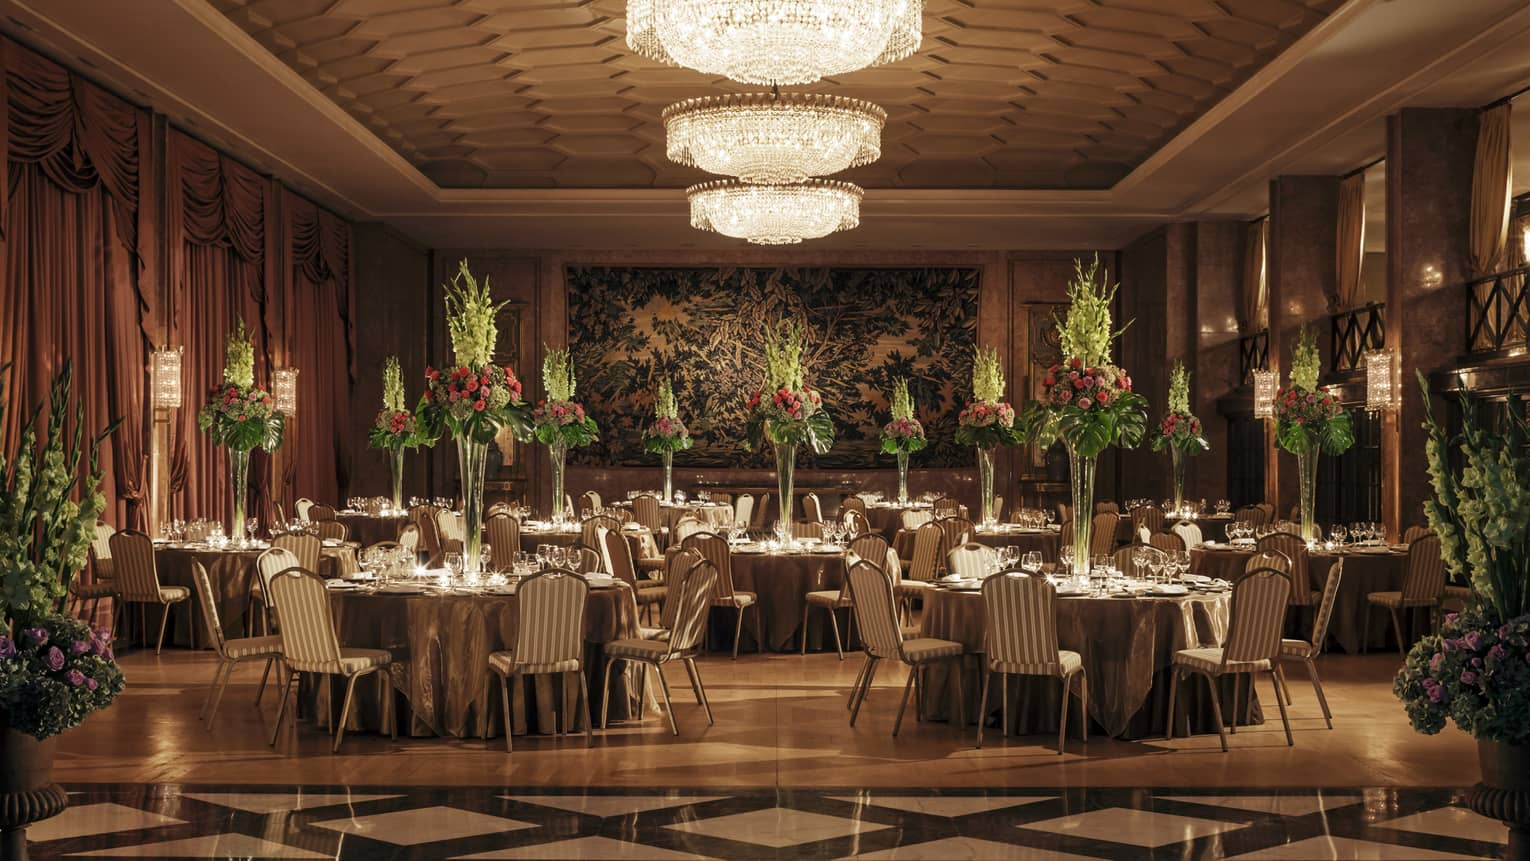 Art Deco-style dining room with tiles, banquet tables with tall flower arrangements, crystal chandelier